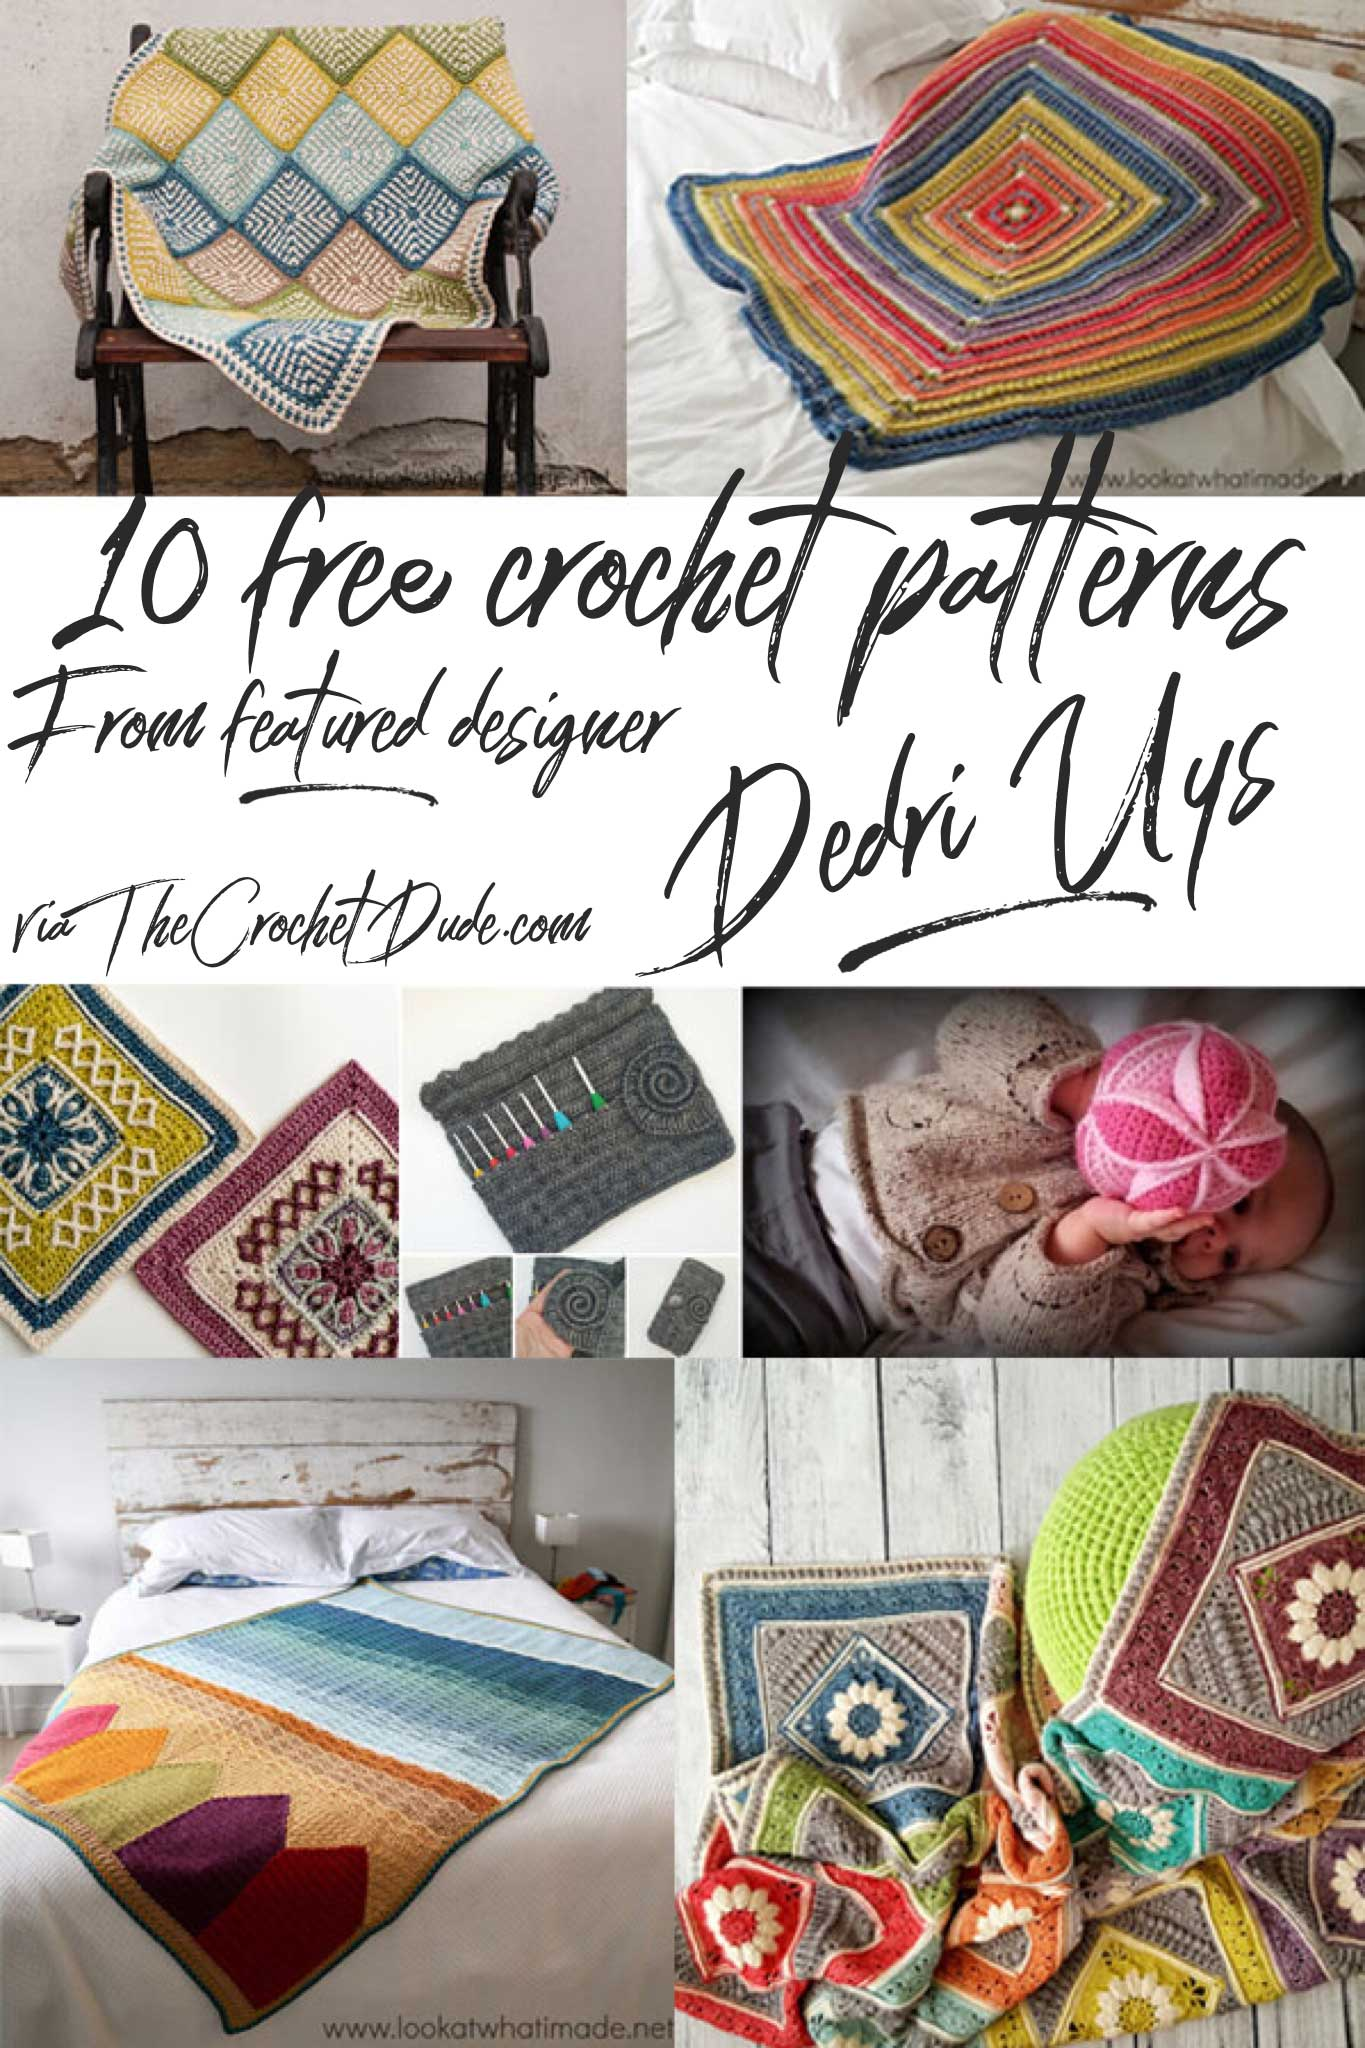 Featured designer Dedri Uys via TheCrochetDude